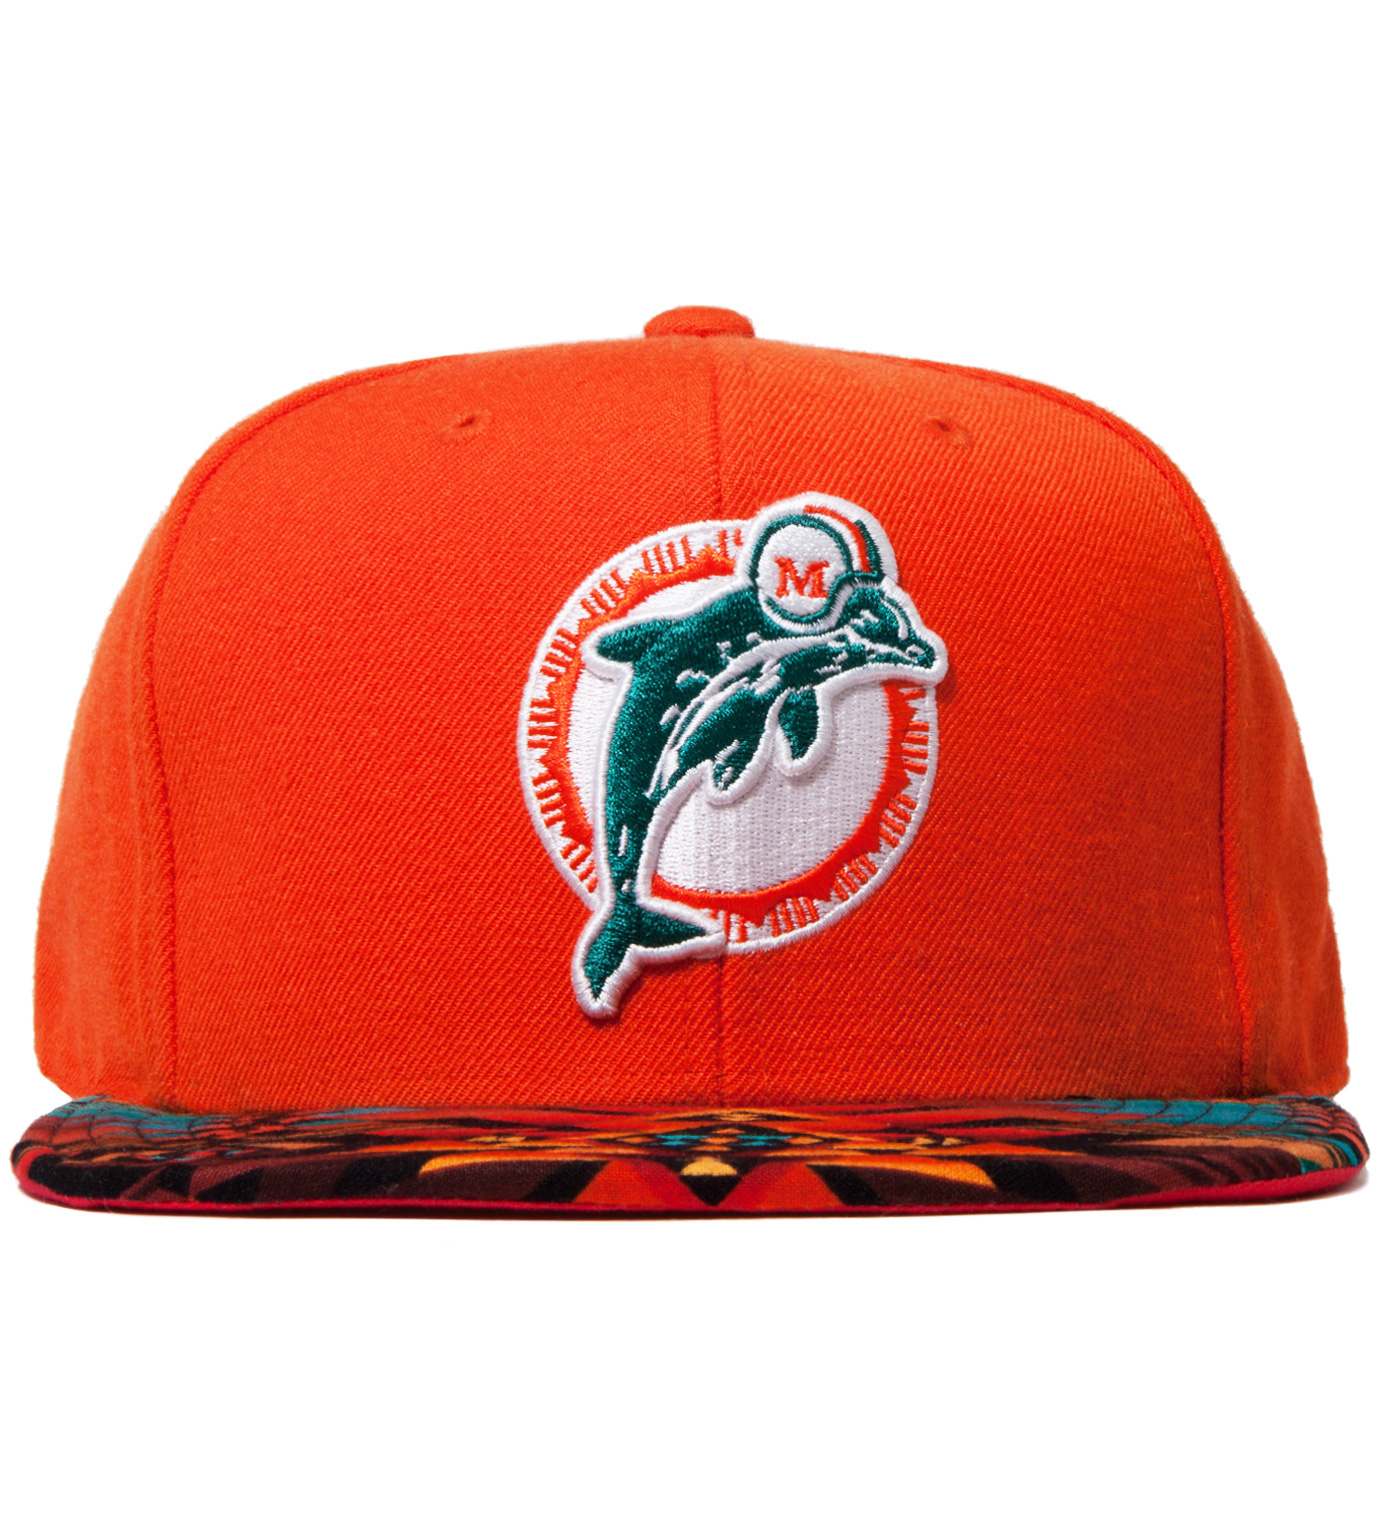 The Genesis Project Miami Dolphins Teal Navajo Strap-Back Cap